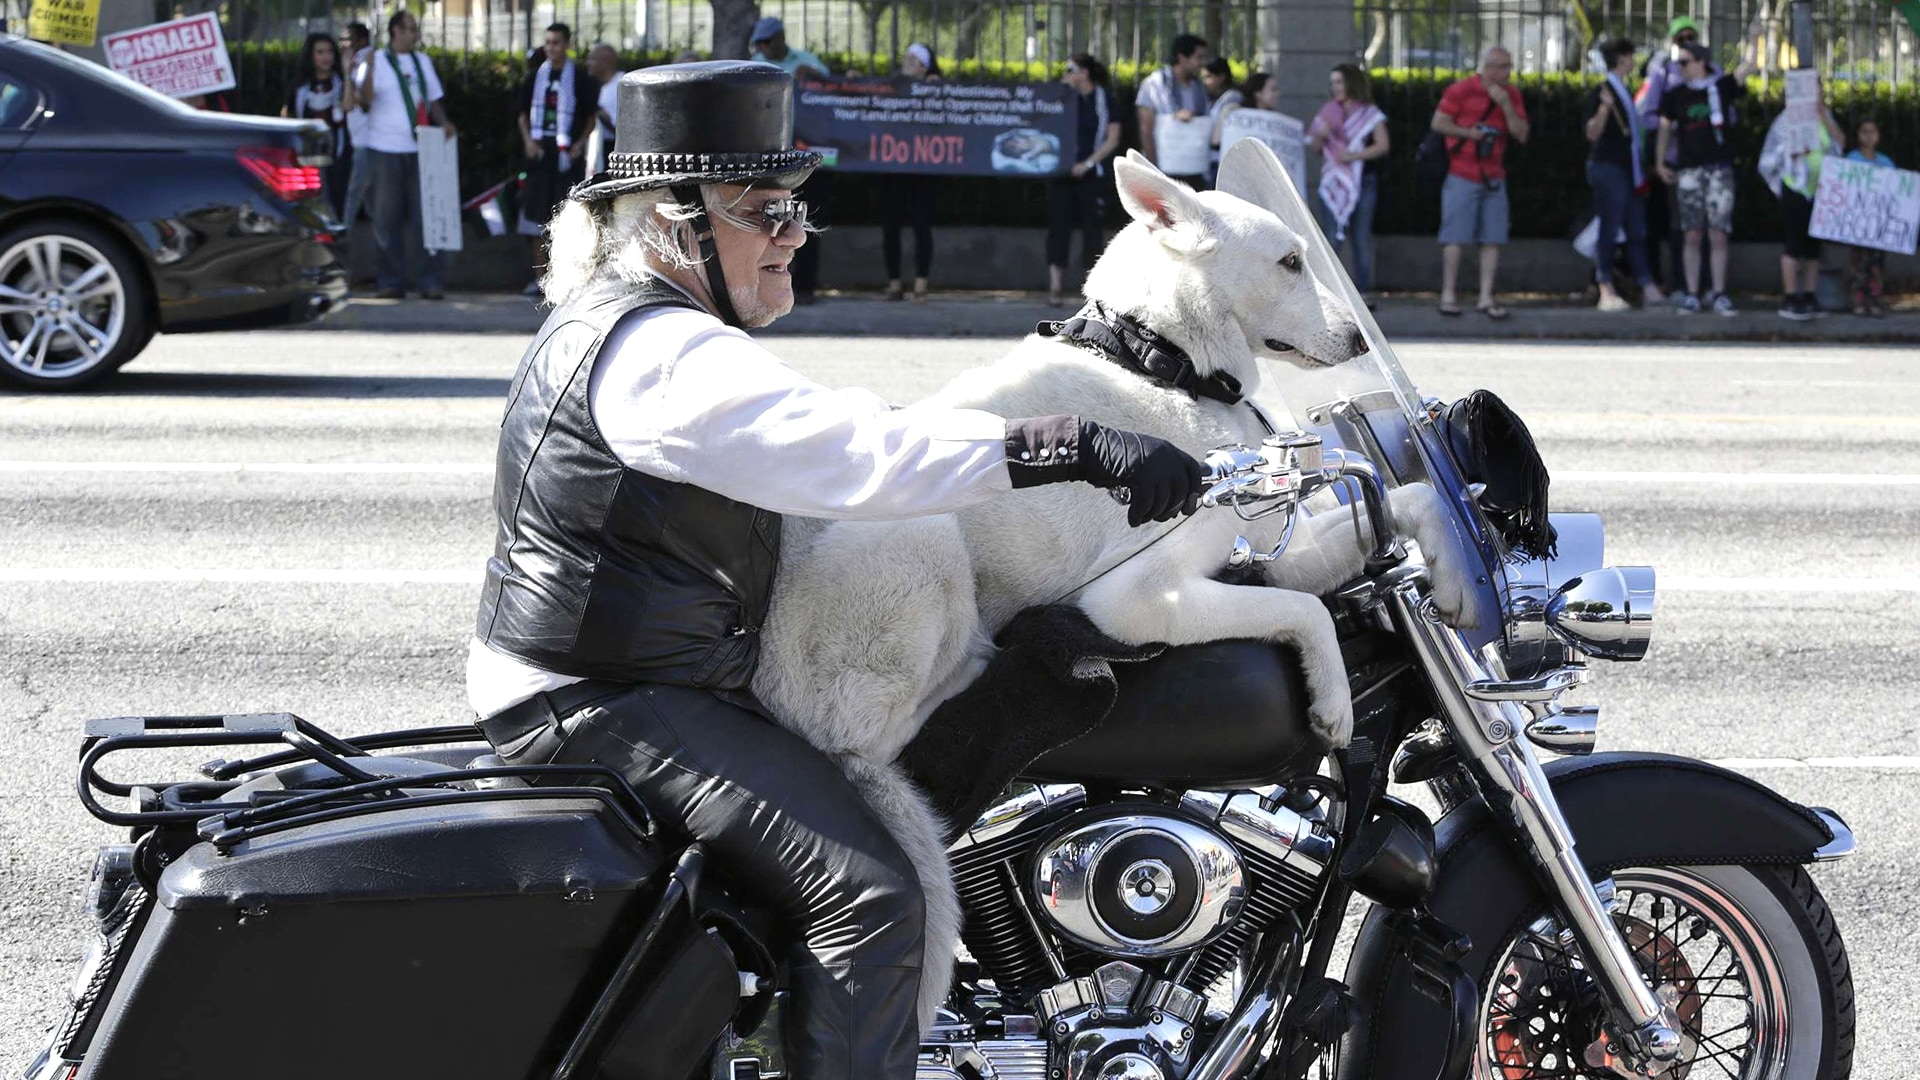 Image: Gerbracht rides his Harley Davidson motorcycle with his dog on Wilshire Boulevard in Los Angeles